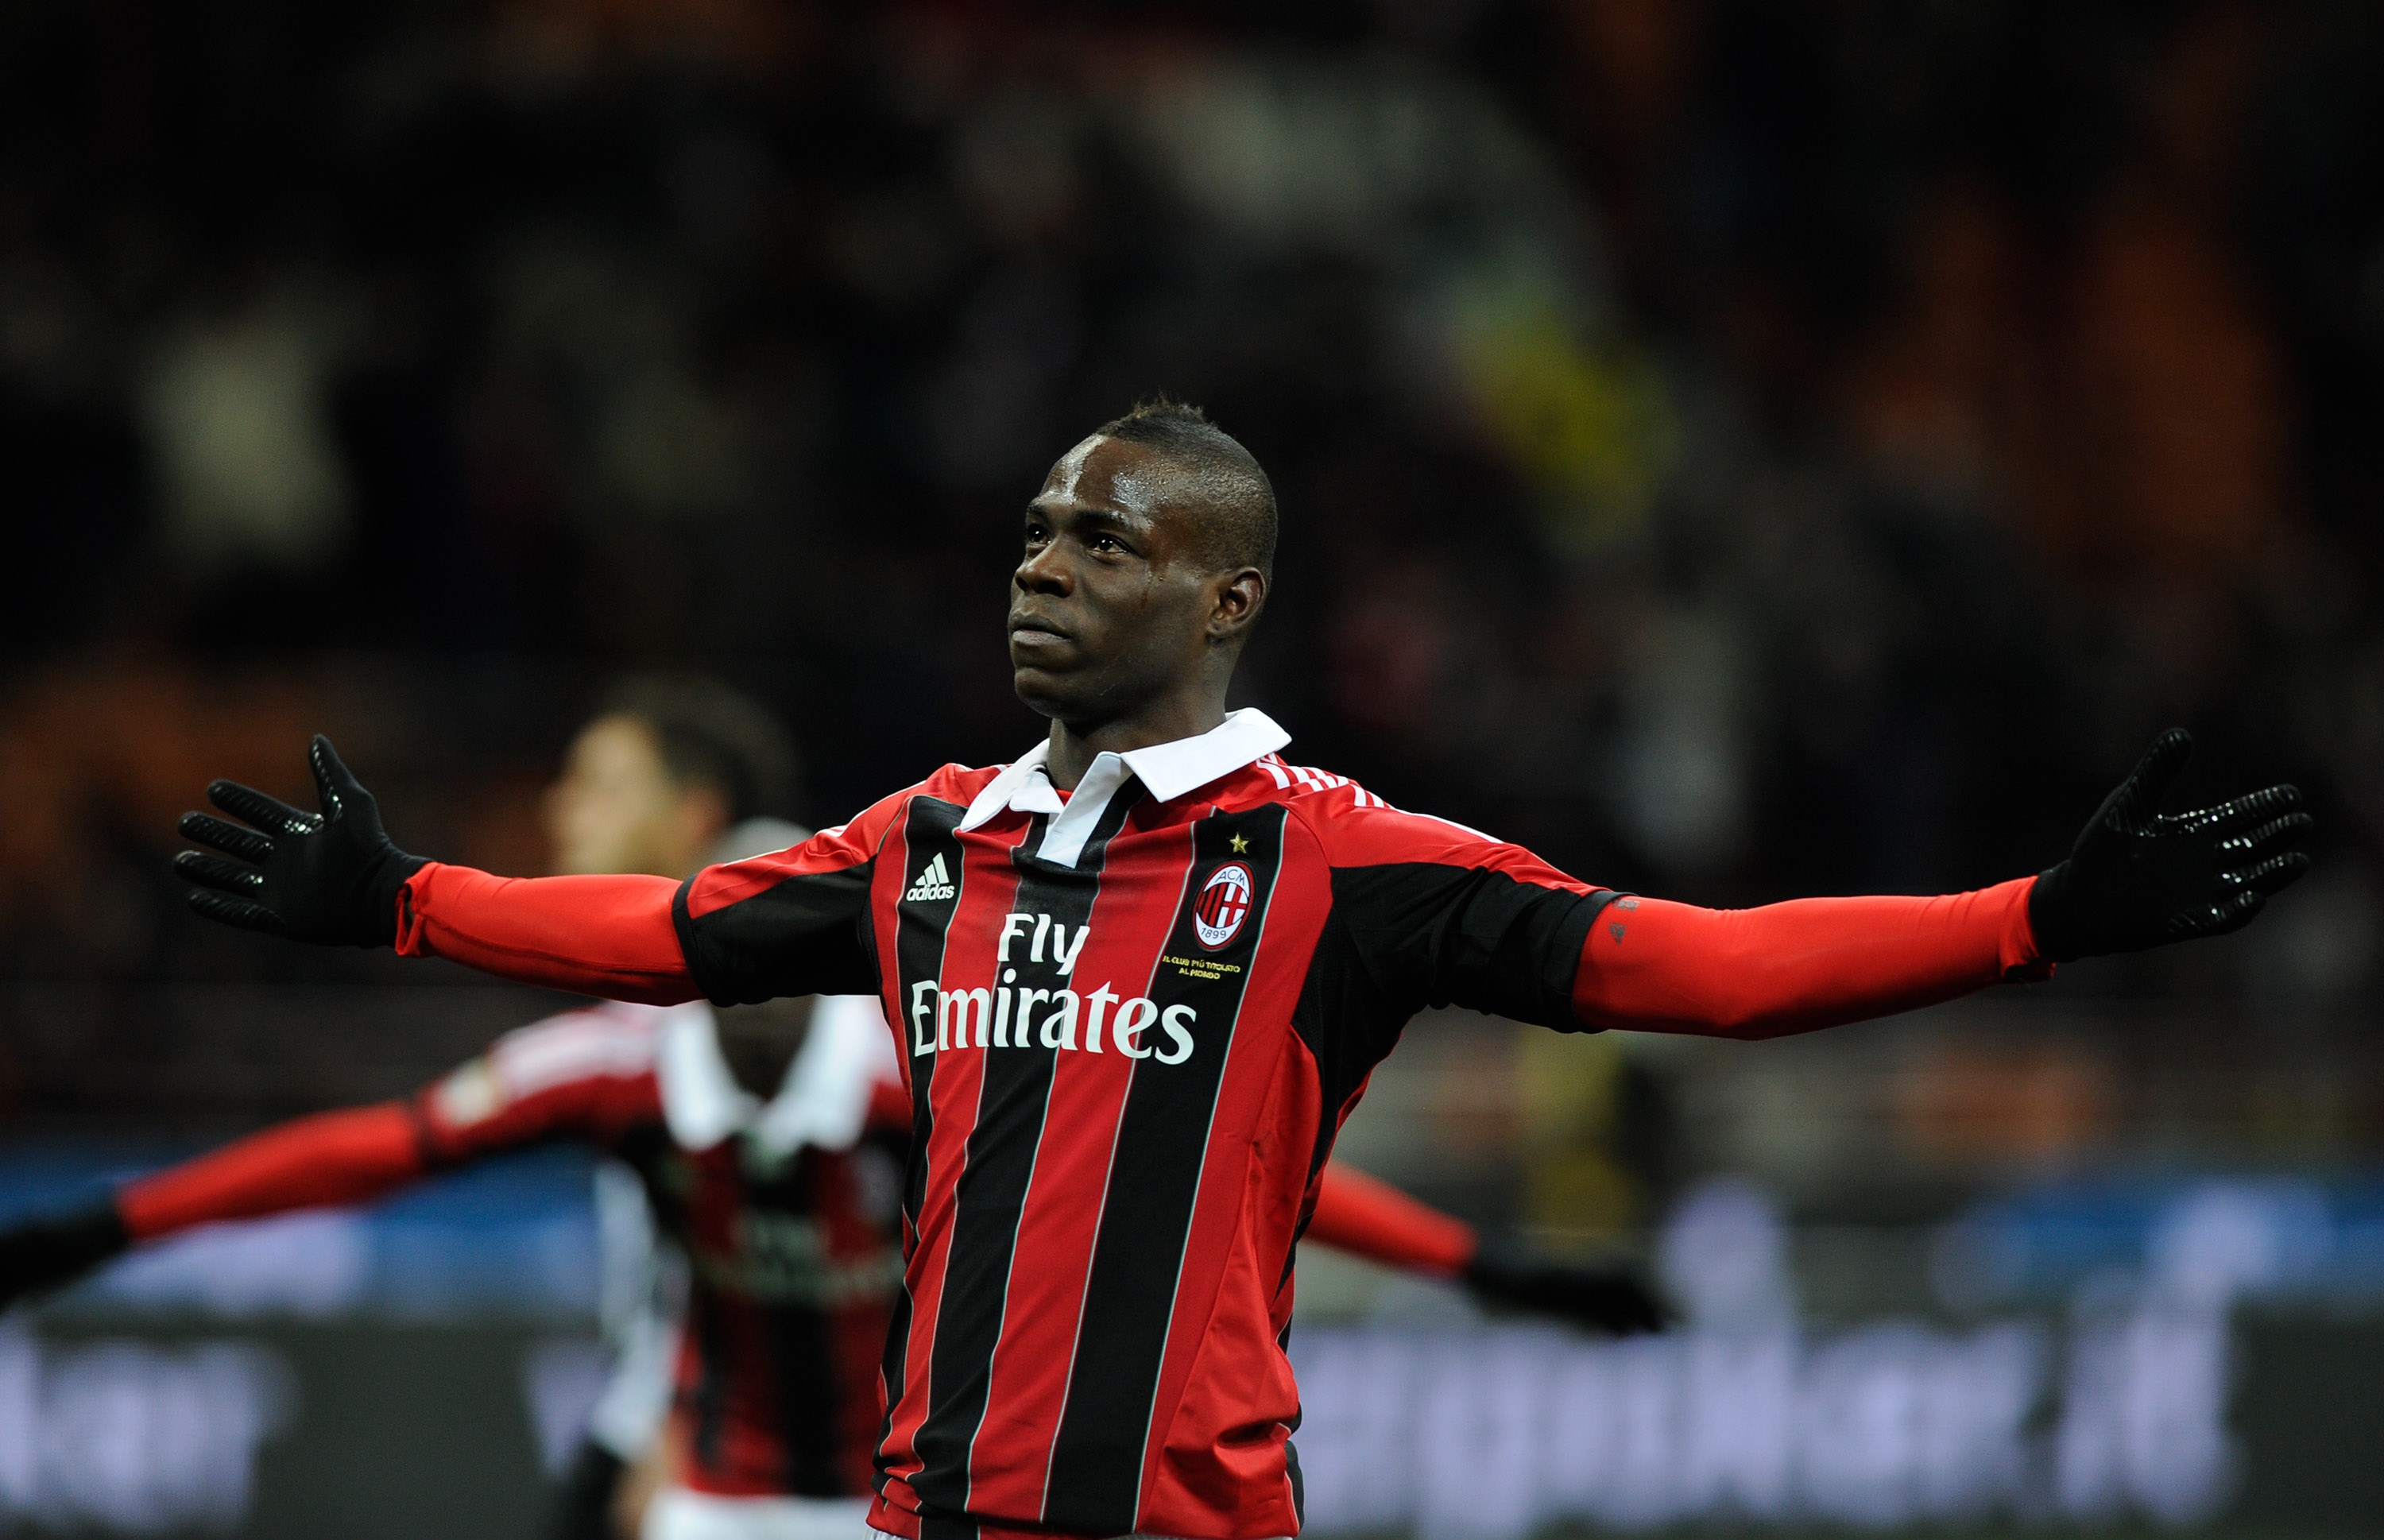 mario balotelli Mario balotelli for those who don't watch soccer, you might not know who mario balotelli is but the comparison here is spot on balotelli is a 27-year-old footballer currently playing for nice in the french ligue 1.